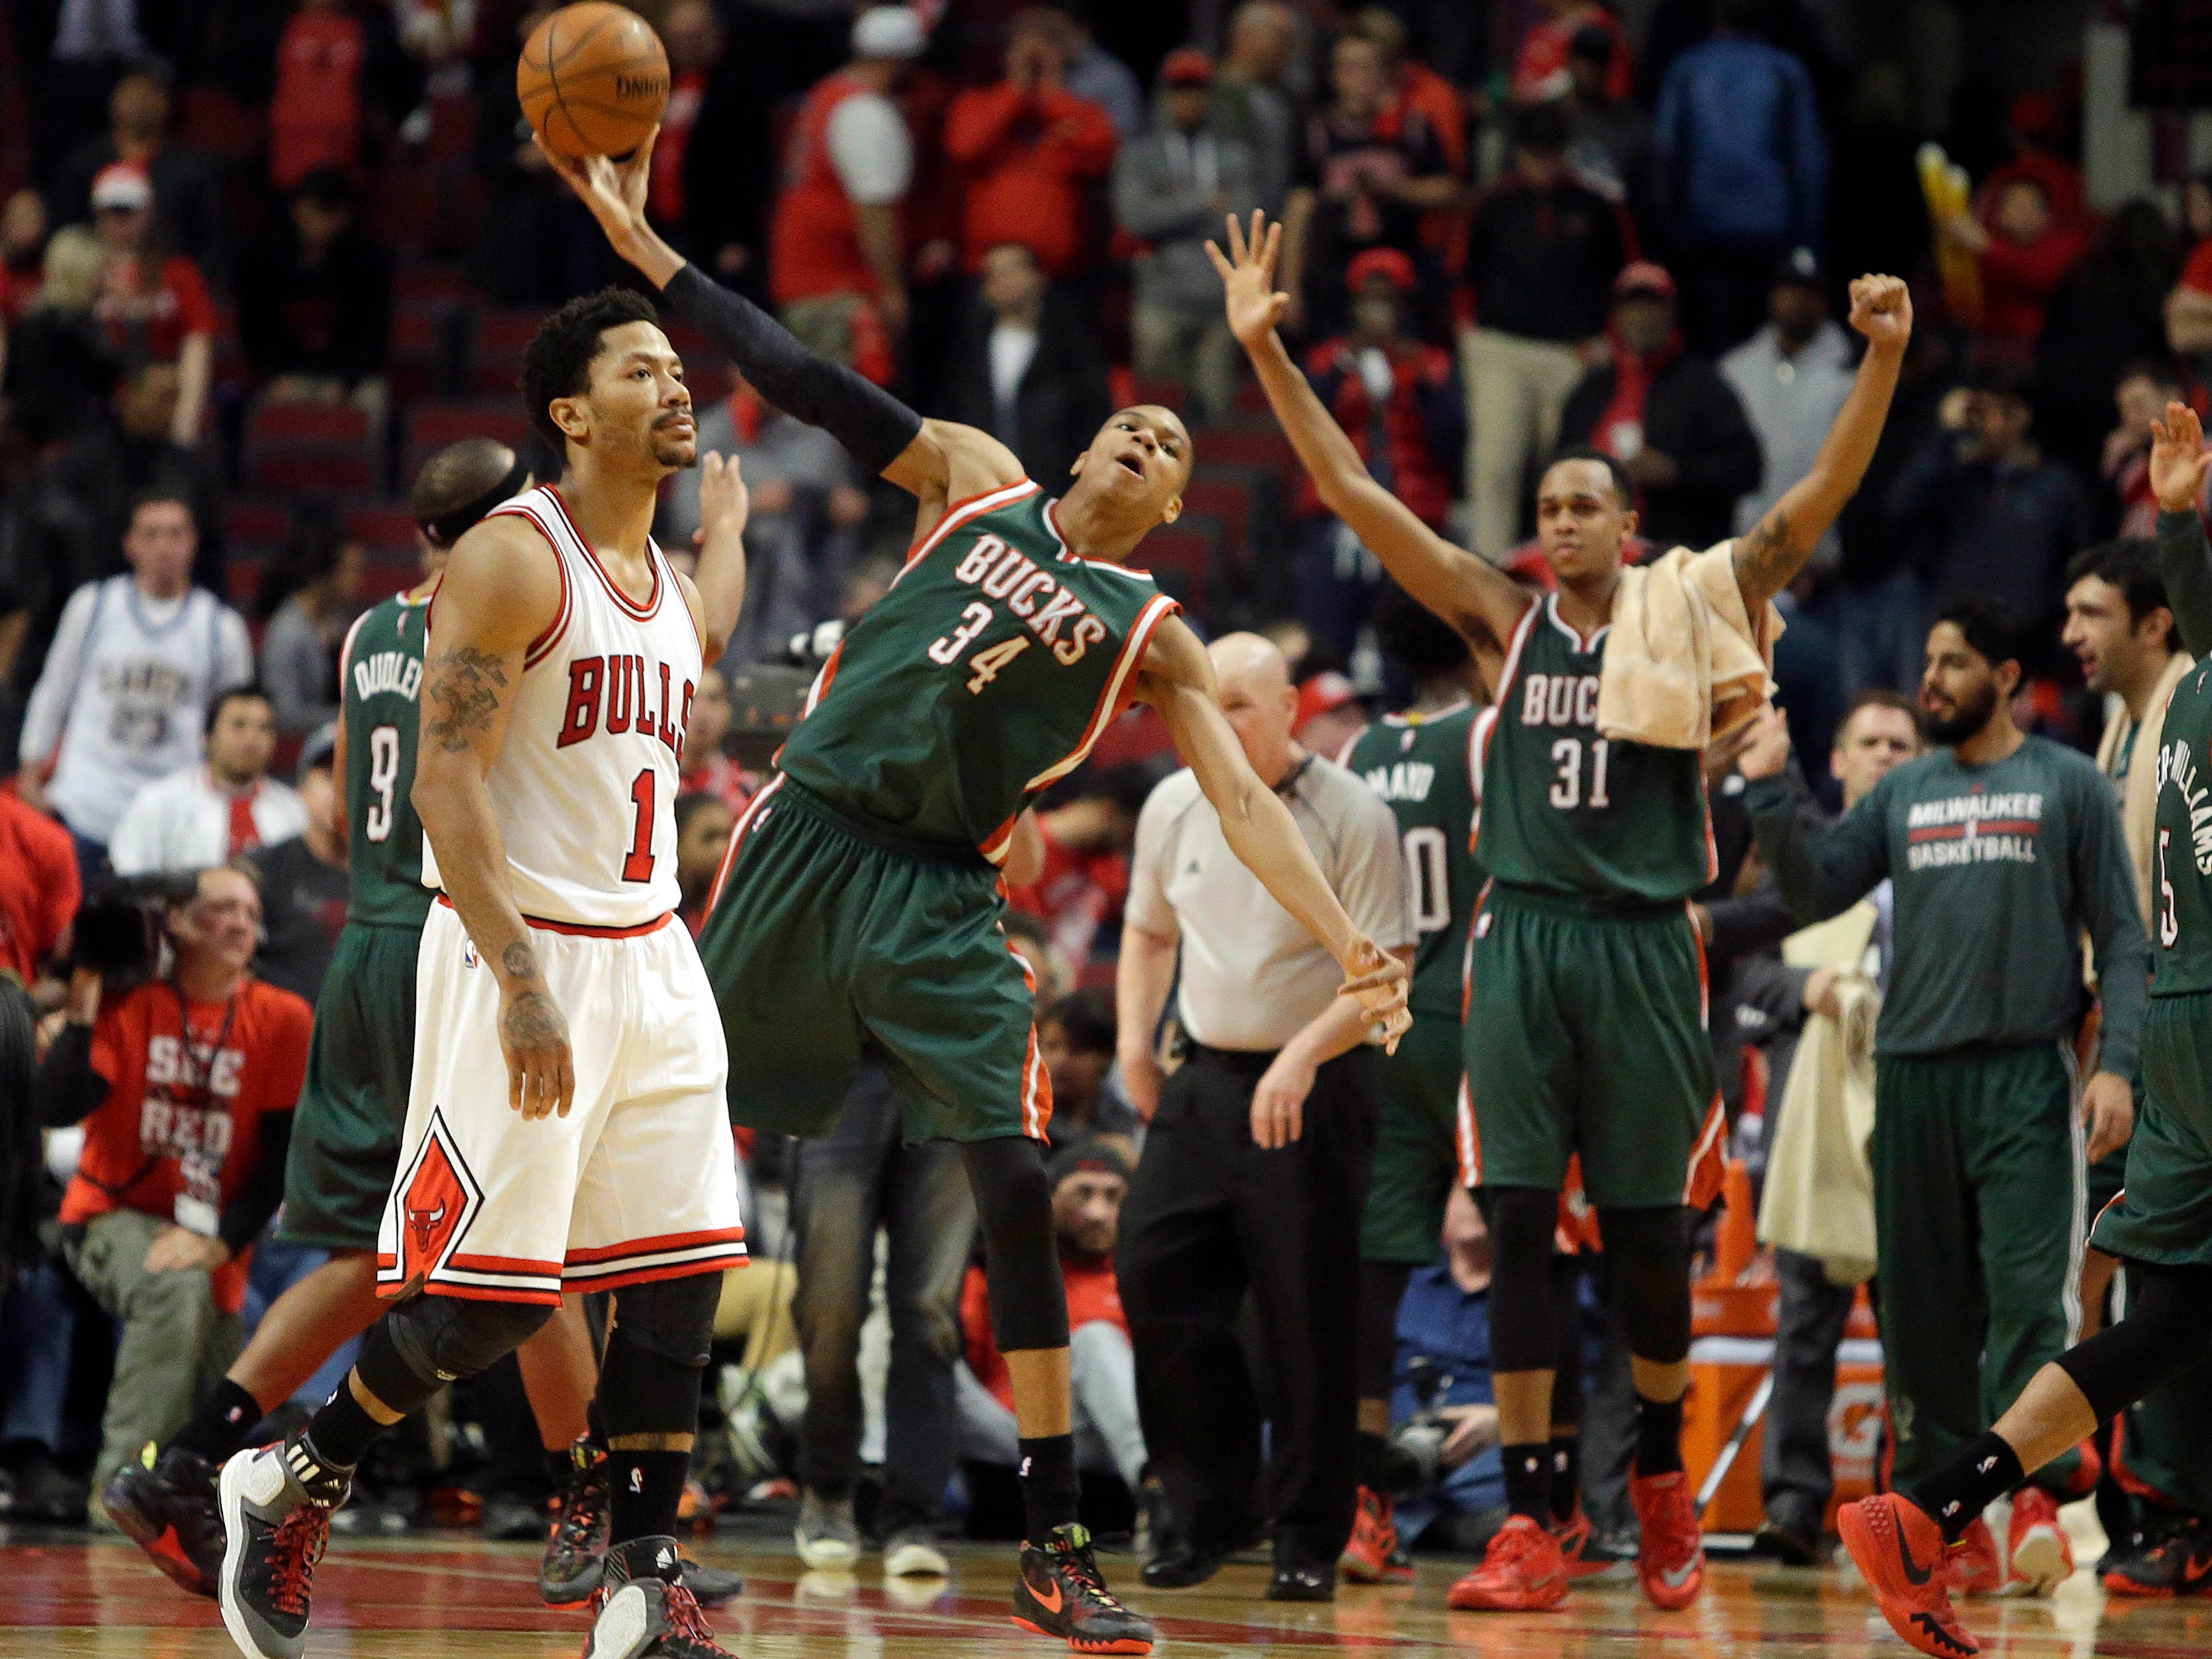 2015: As time expires, Milwaukee Bucks forward Giannis Antetokounmpo (center) hurls the ball as Chicago Bulls guard Derrick Rose (left) walks off the court after the Bucks' 94-88 win over the Chicago Bulls in the first-round Eastern Conference playoff game  at the United Center in Chicago on April 27, 2015. The Bulls wound up eliminating the Bucks in six games.